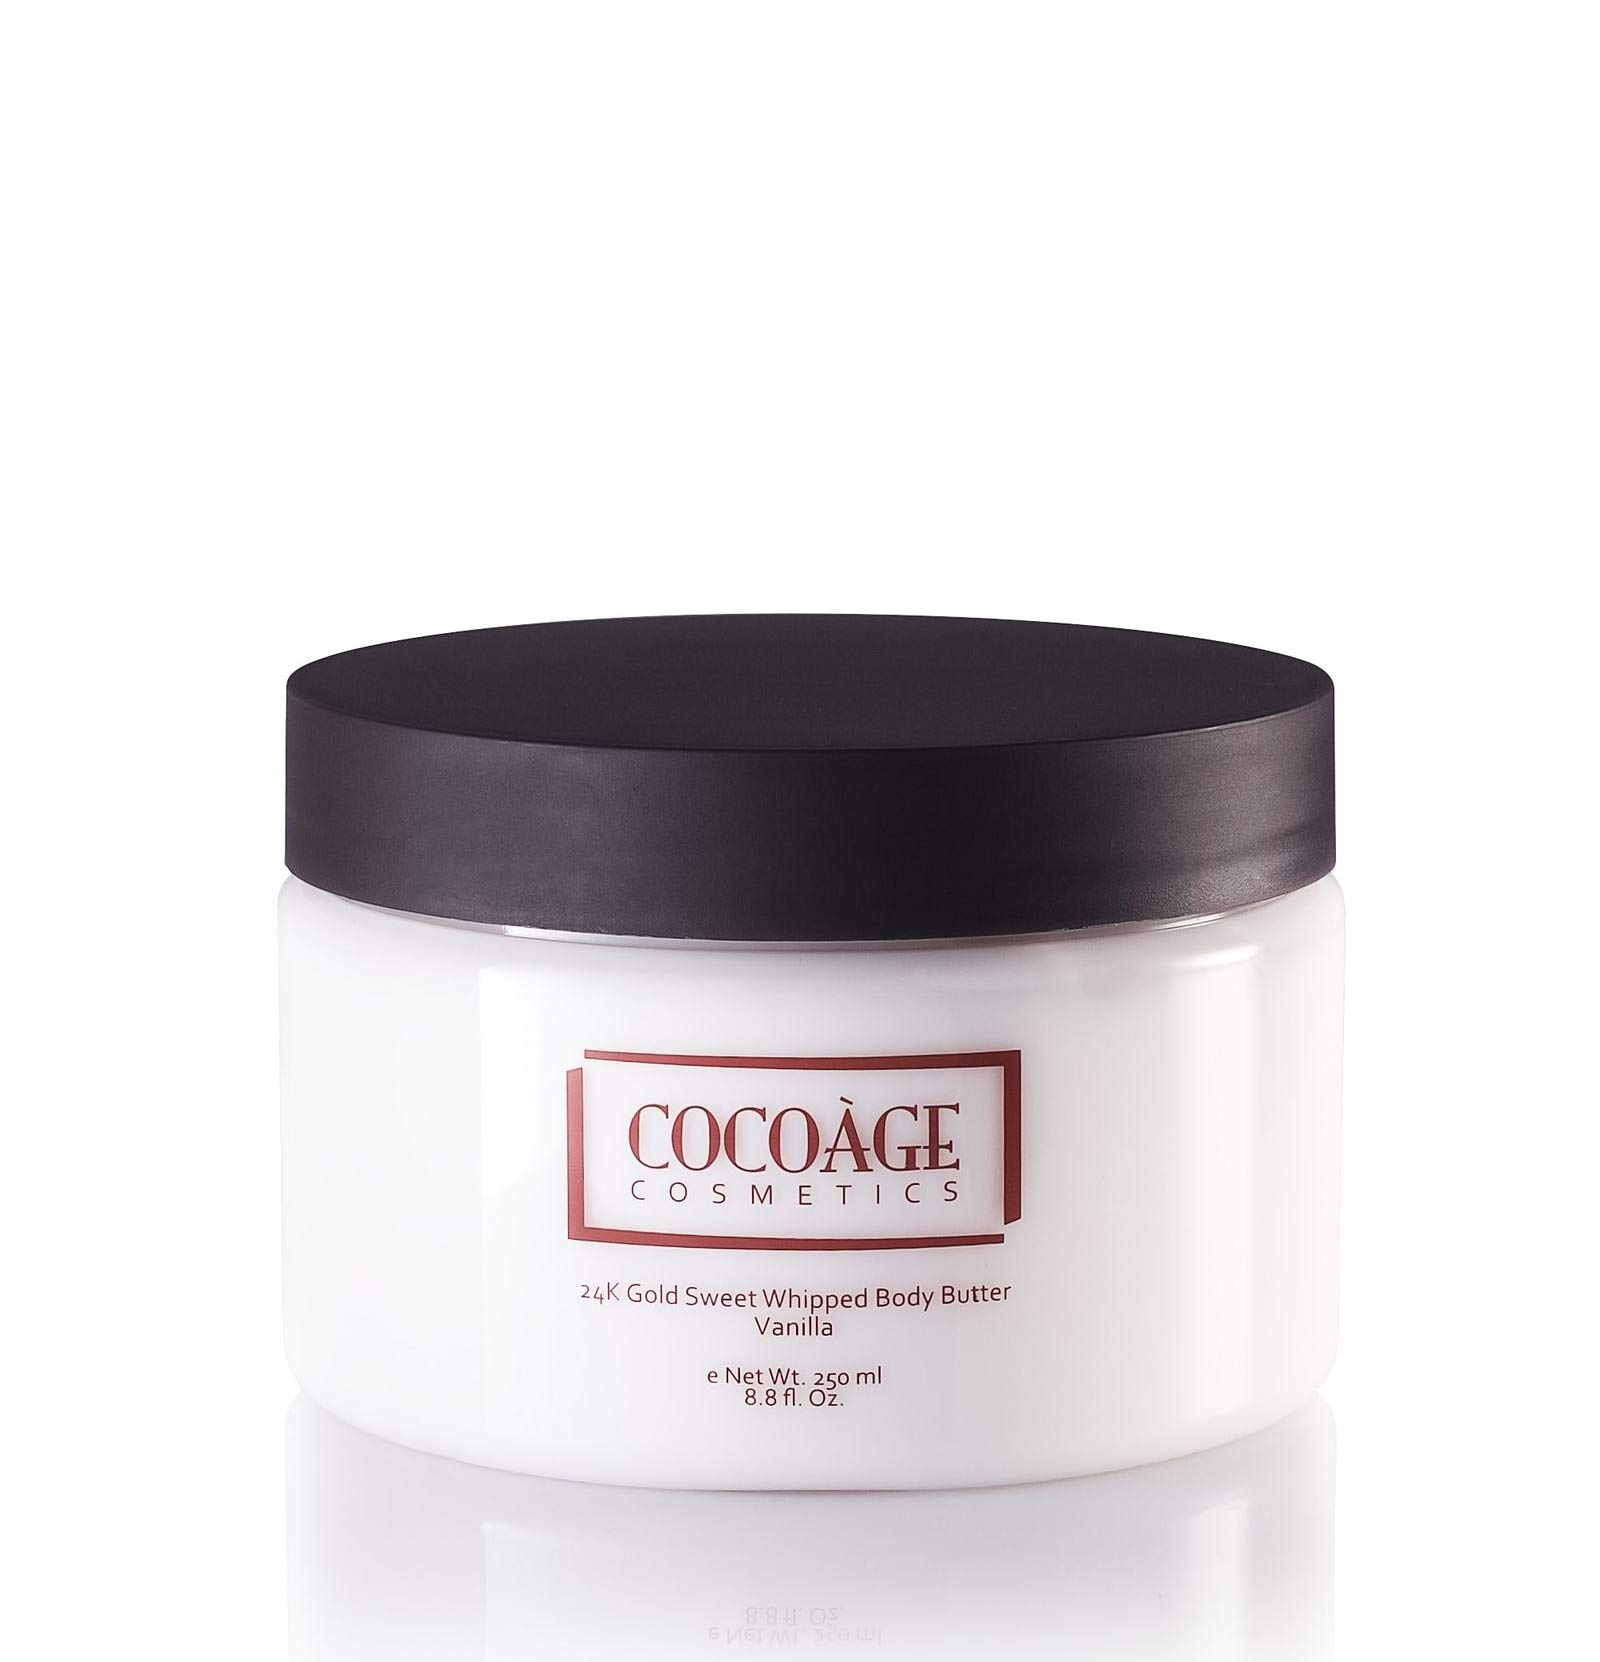 Cocoàge Cosmetics | 24K Gold Sweet Whipped Body Butter - Vanilla